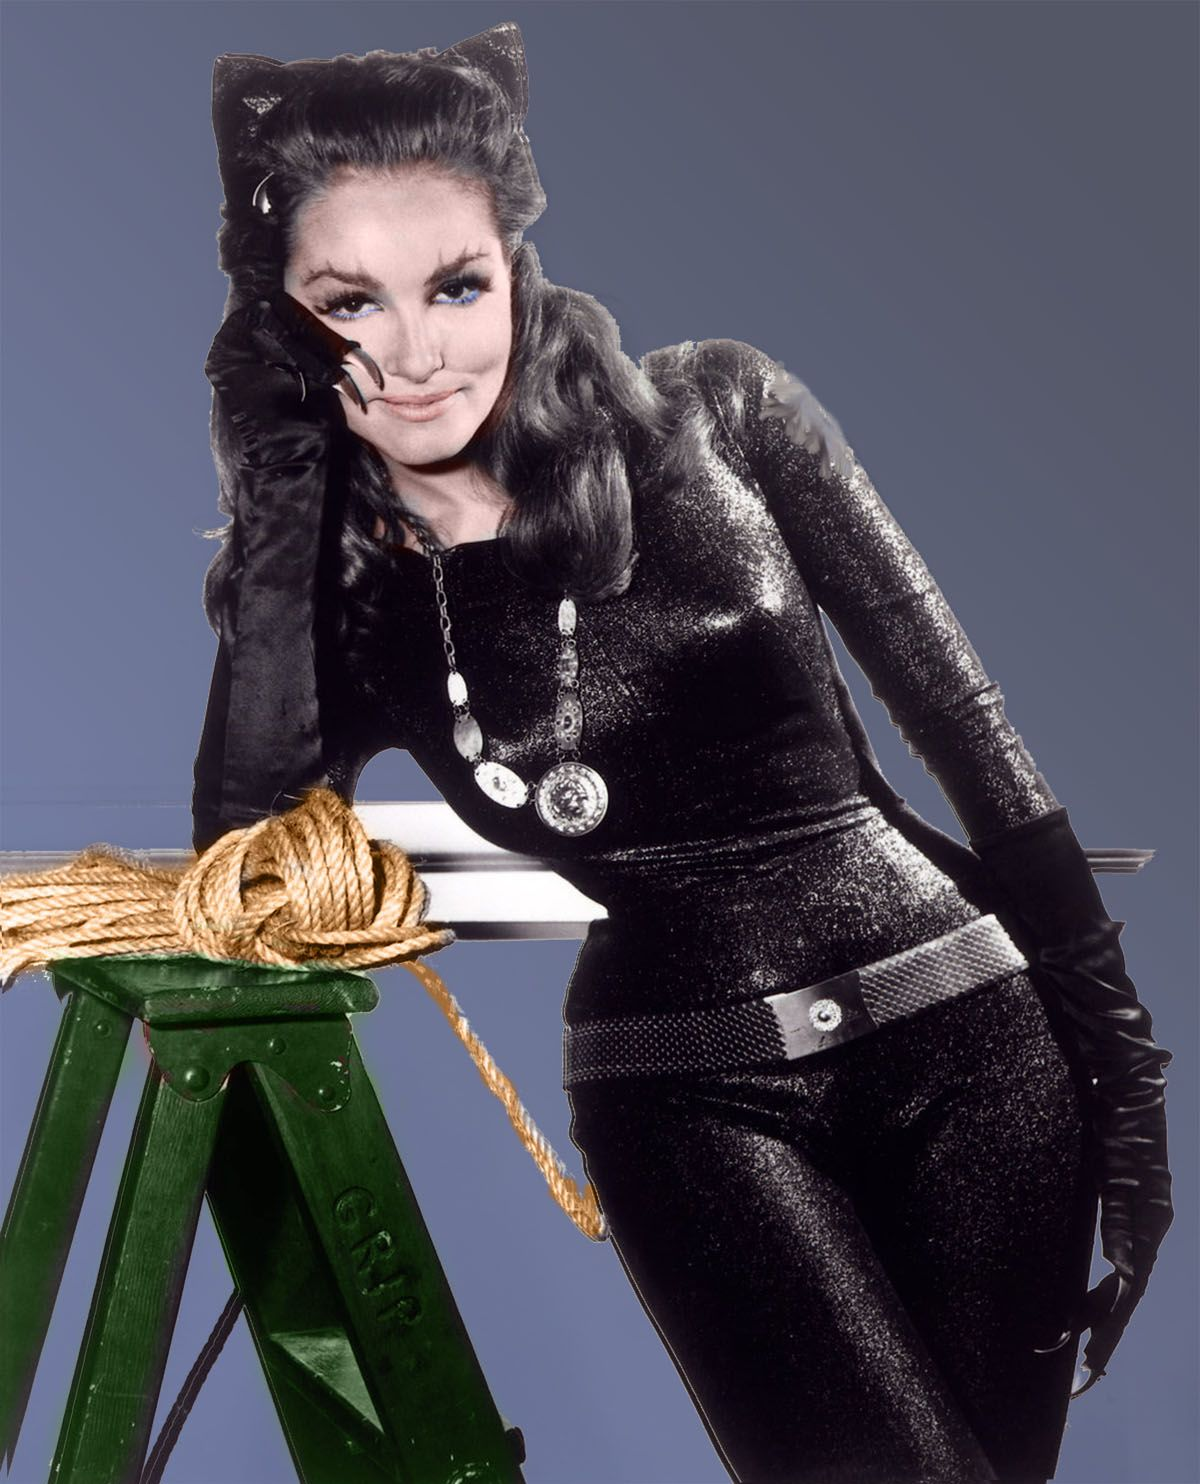 More Julie Newmar